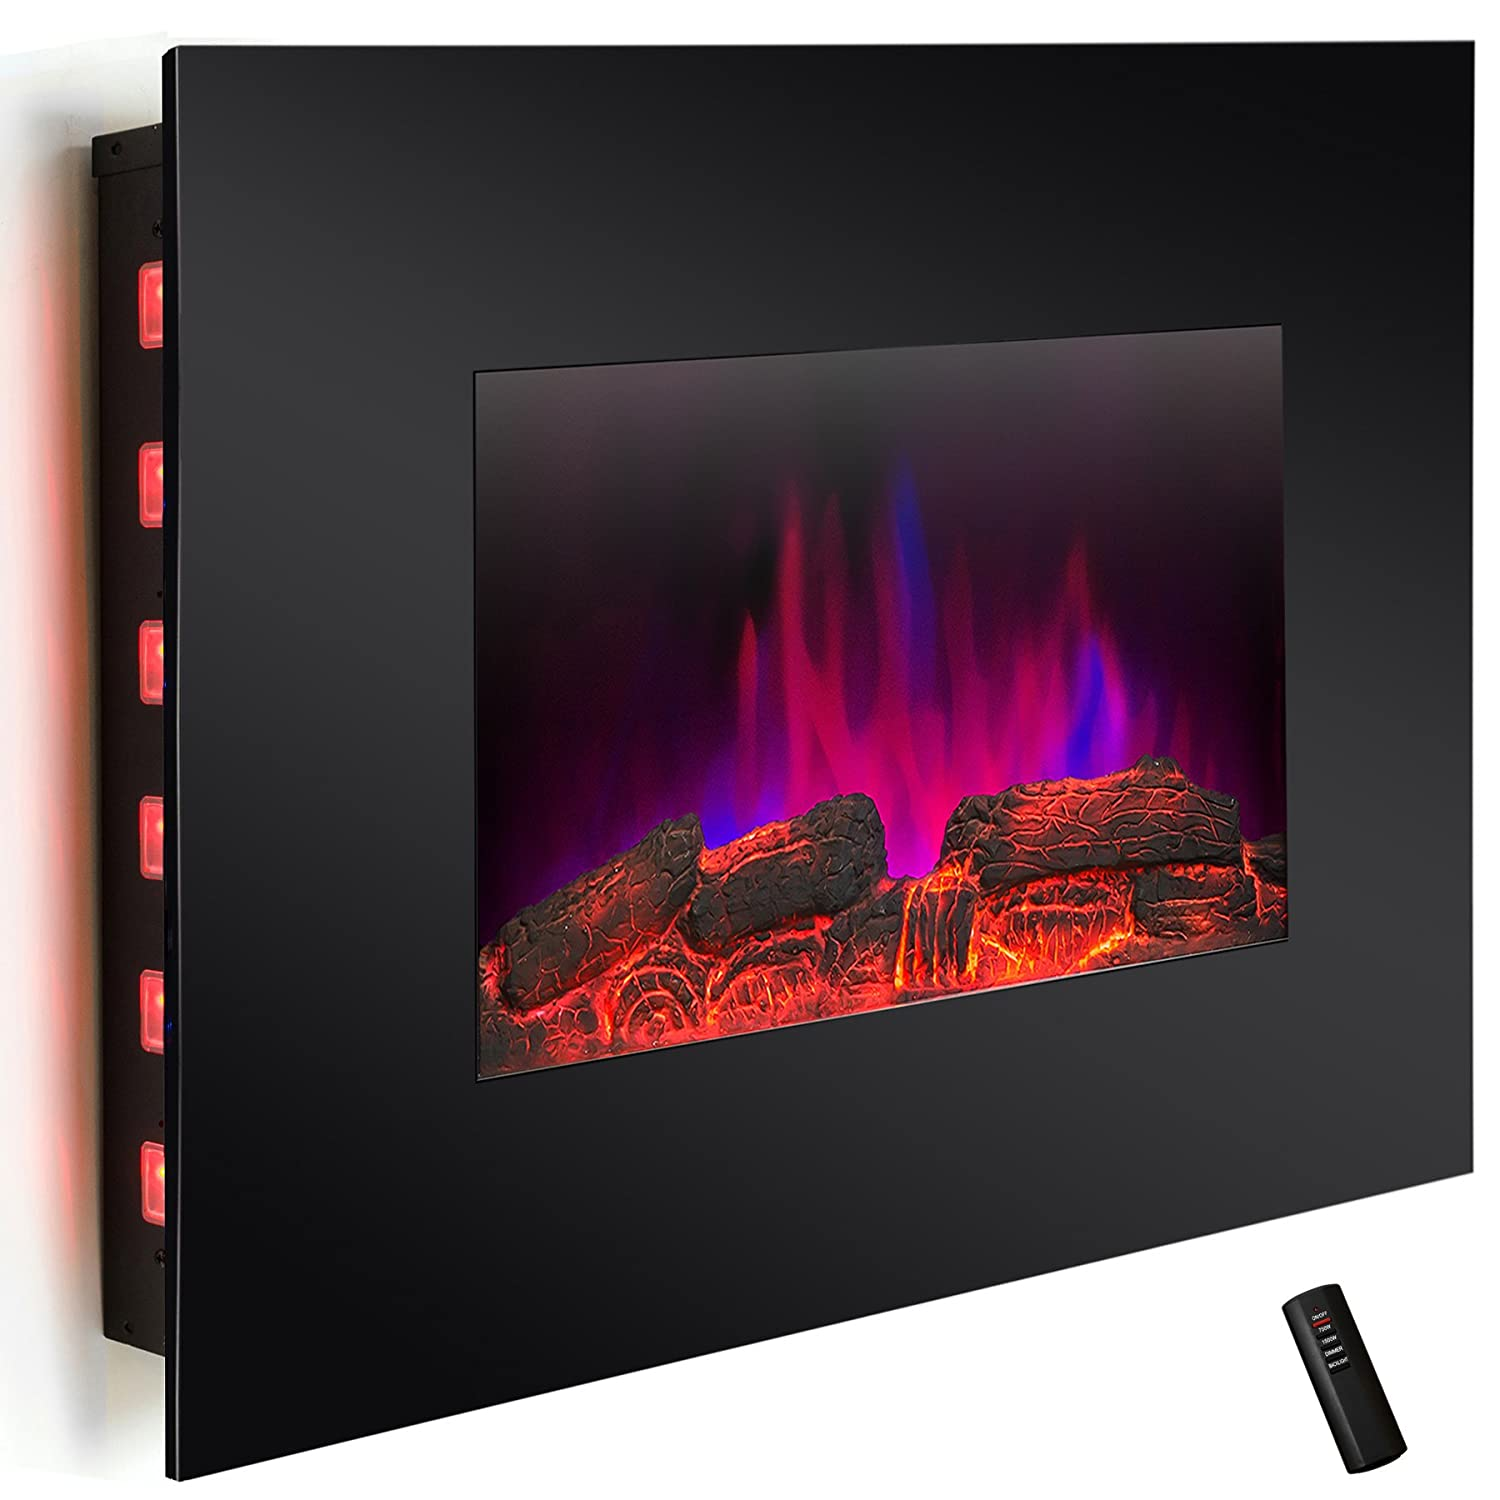 "Buy AKDY® 36"" LED Wall Mount Electric Fireplace Modern Space Heater Flat Tempered Glass w/Remote Control: Space Heaters - Amazon.com ? FREE DELIVERY possible on eligible purchases"